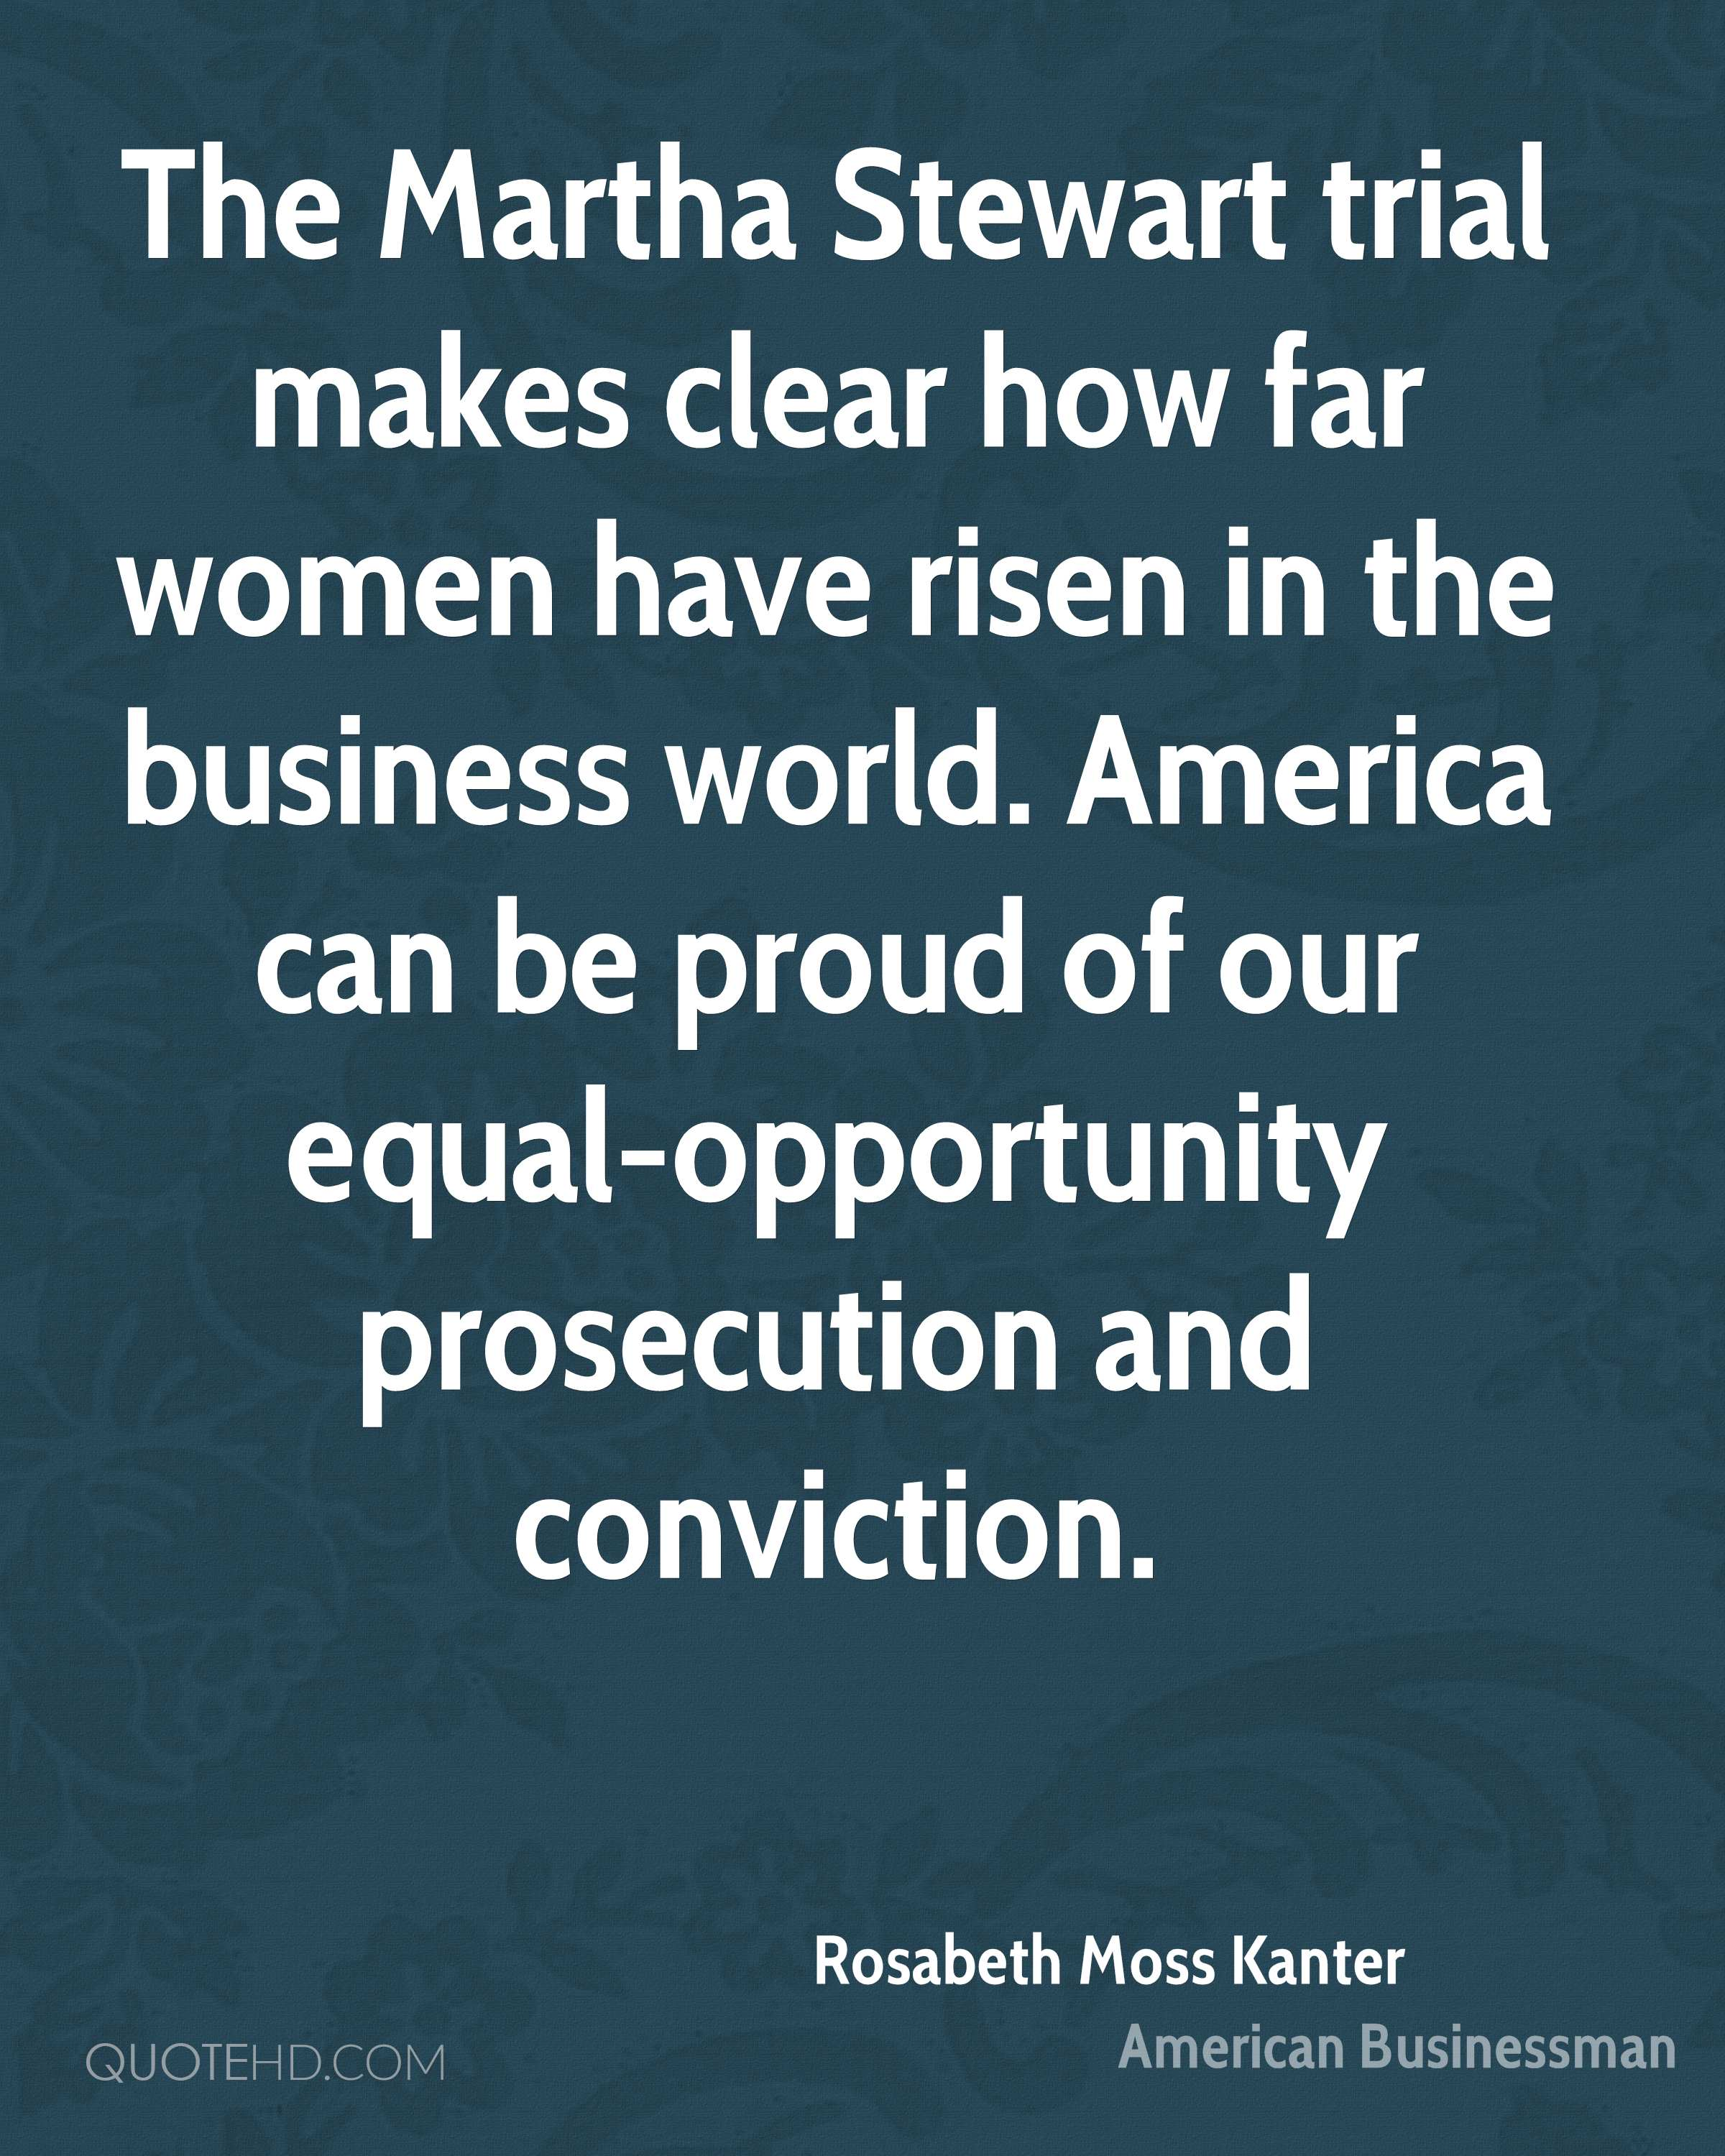 The Martha Stewart trial makes clear how far women have risen in the business world. America can be proud of our equal-opportunity prosecution and conviction.